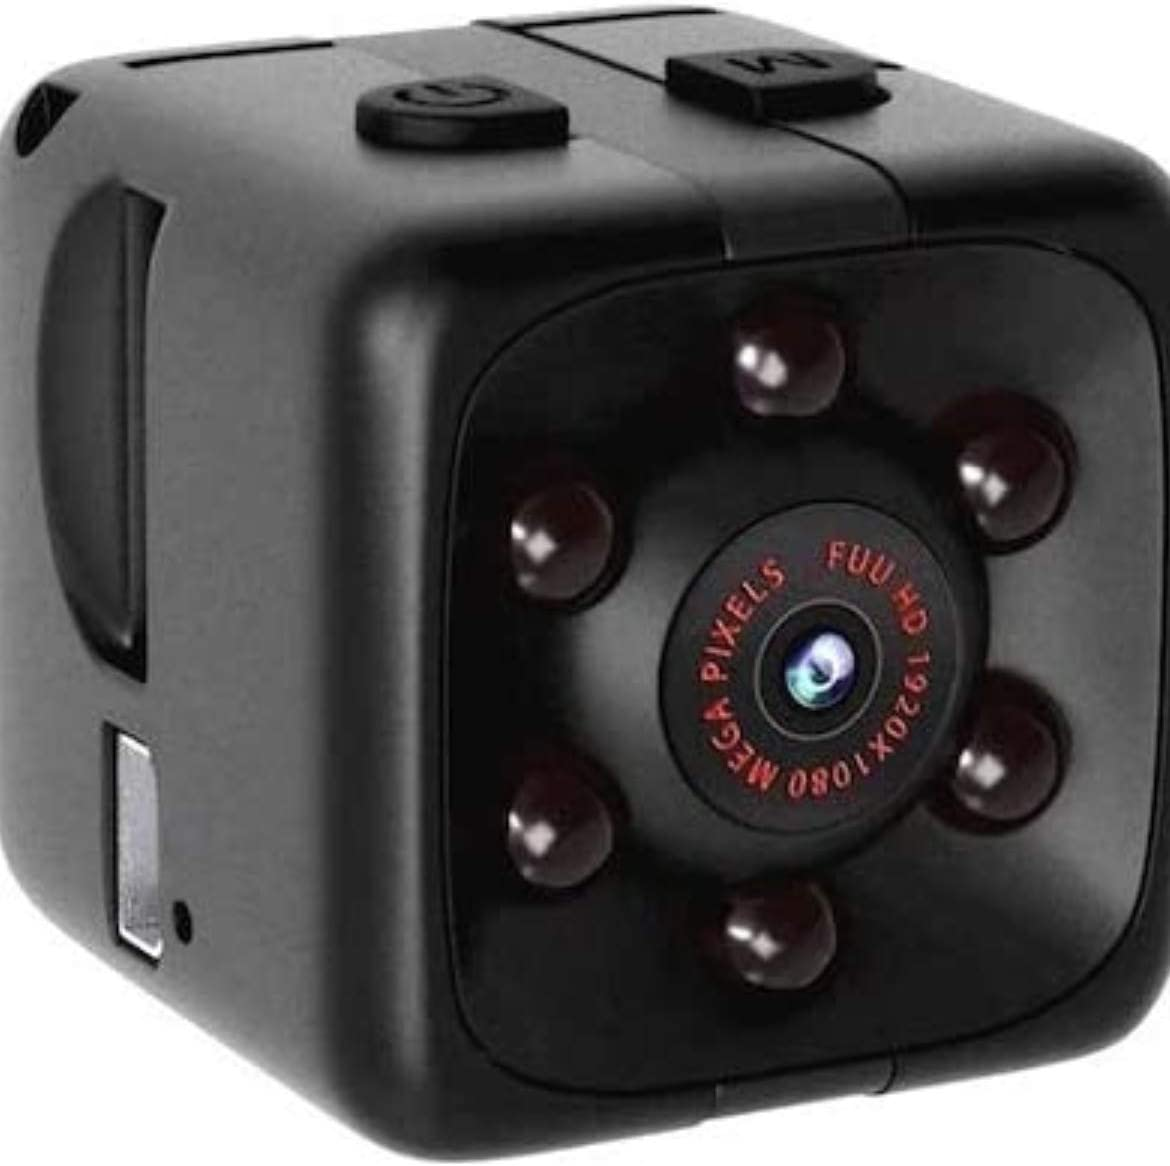 CO CAMS SQ11 Mini Camera is one of a Kind with It's Motion Detection and Night Vision for Your Home Security Needs can be Used as a Hidden Camera or spy Camera Wireless 1080p with Audio and Recording